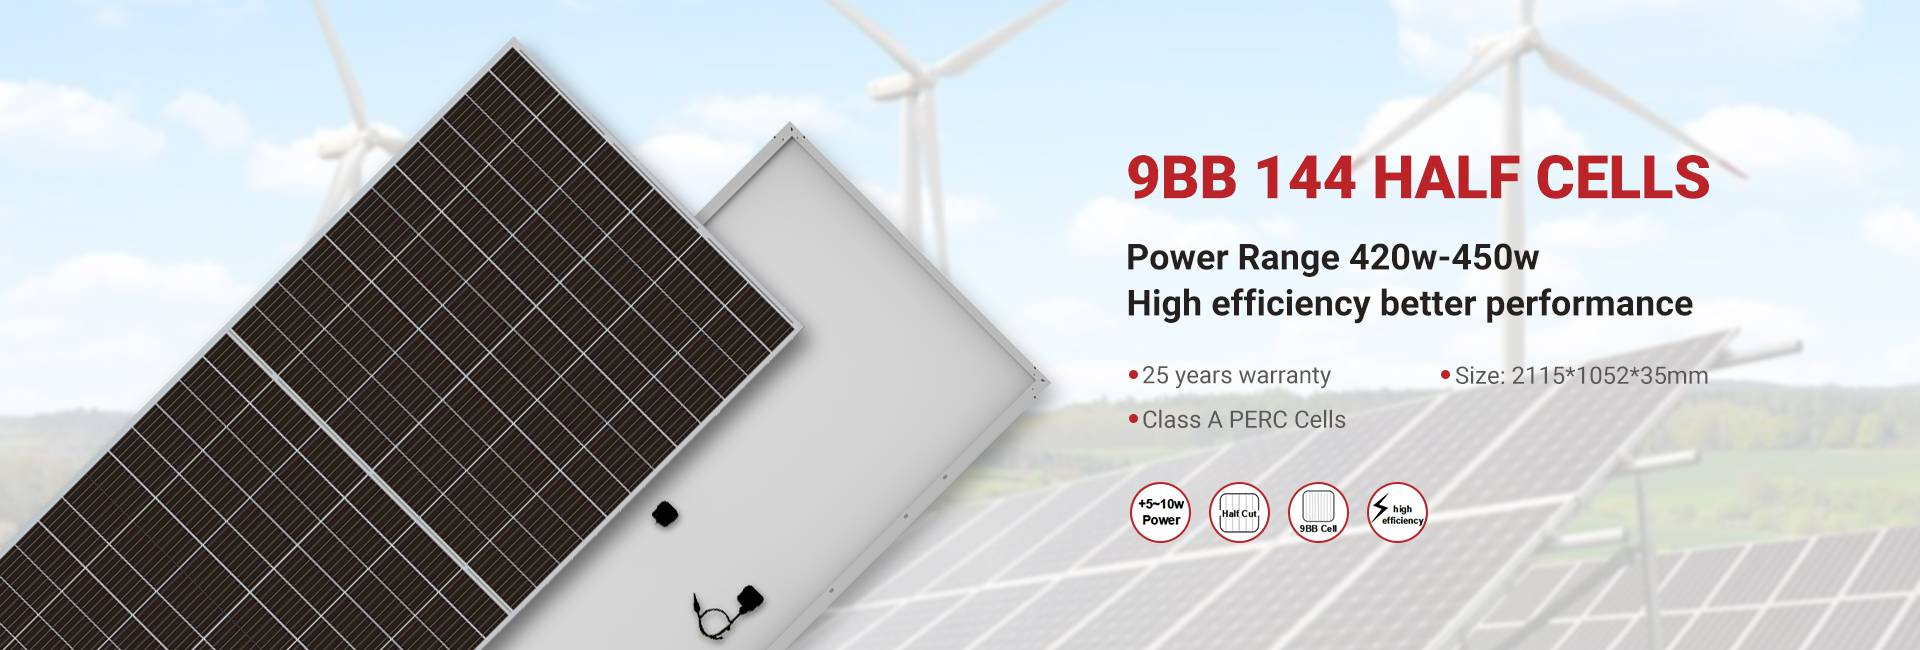 9bb-half-cut-cell-solar-panels